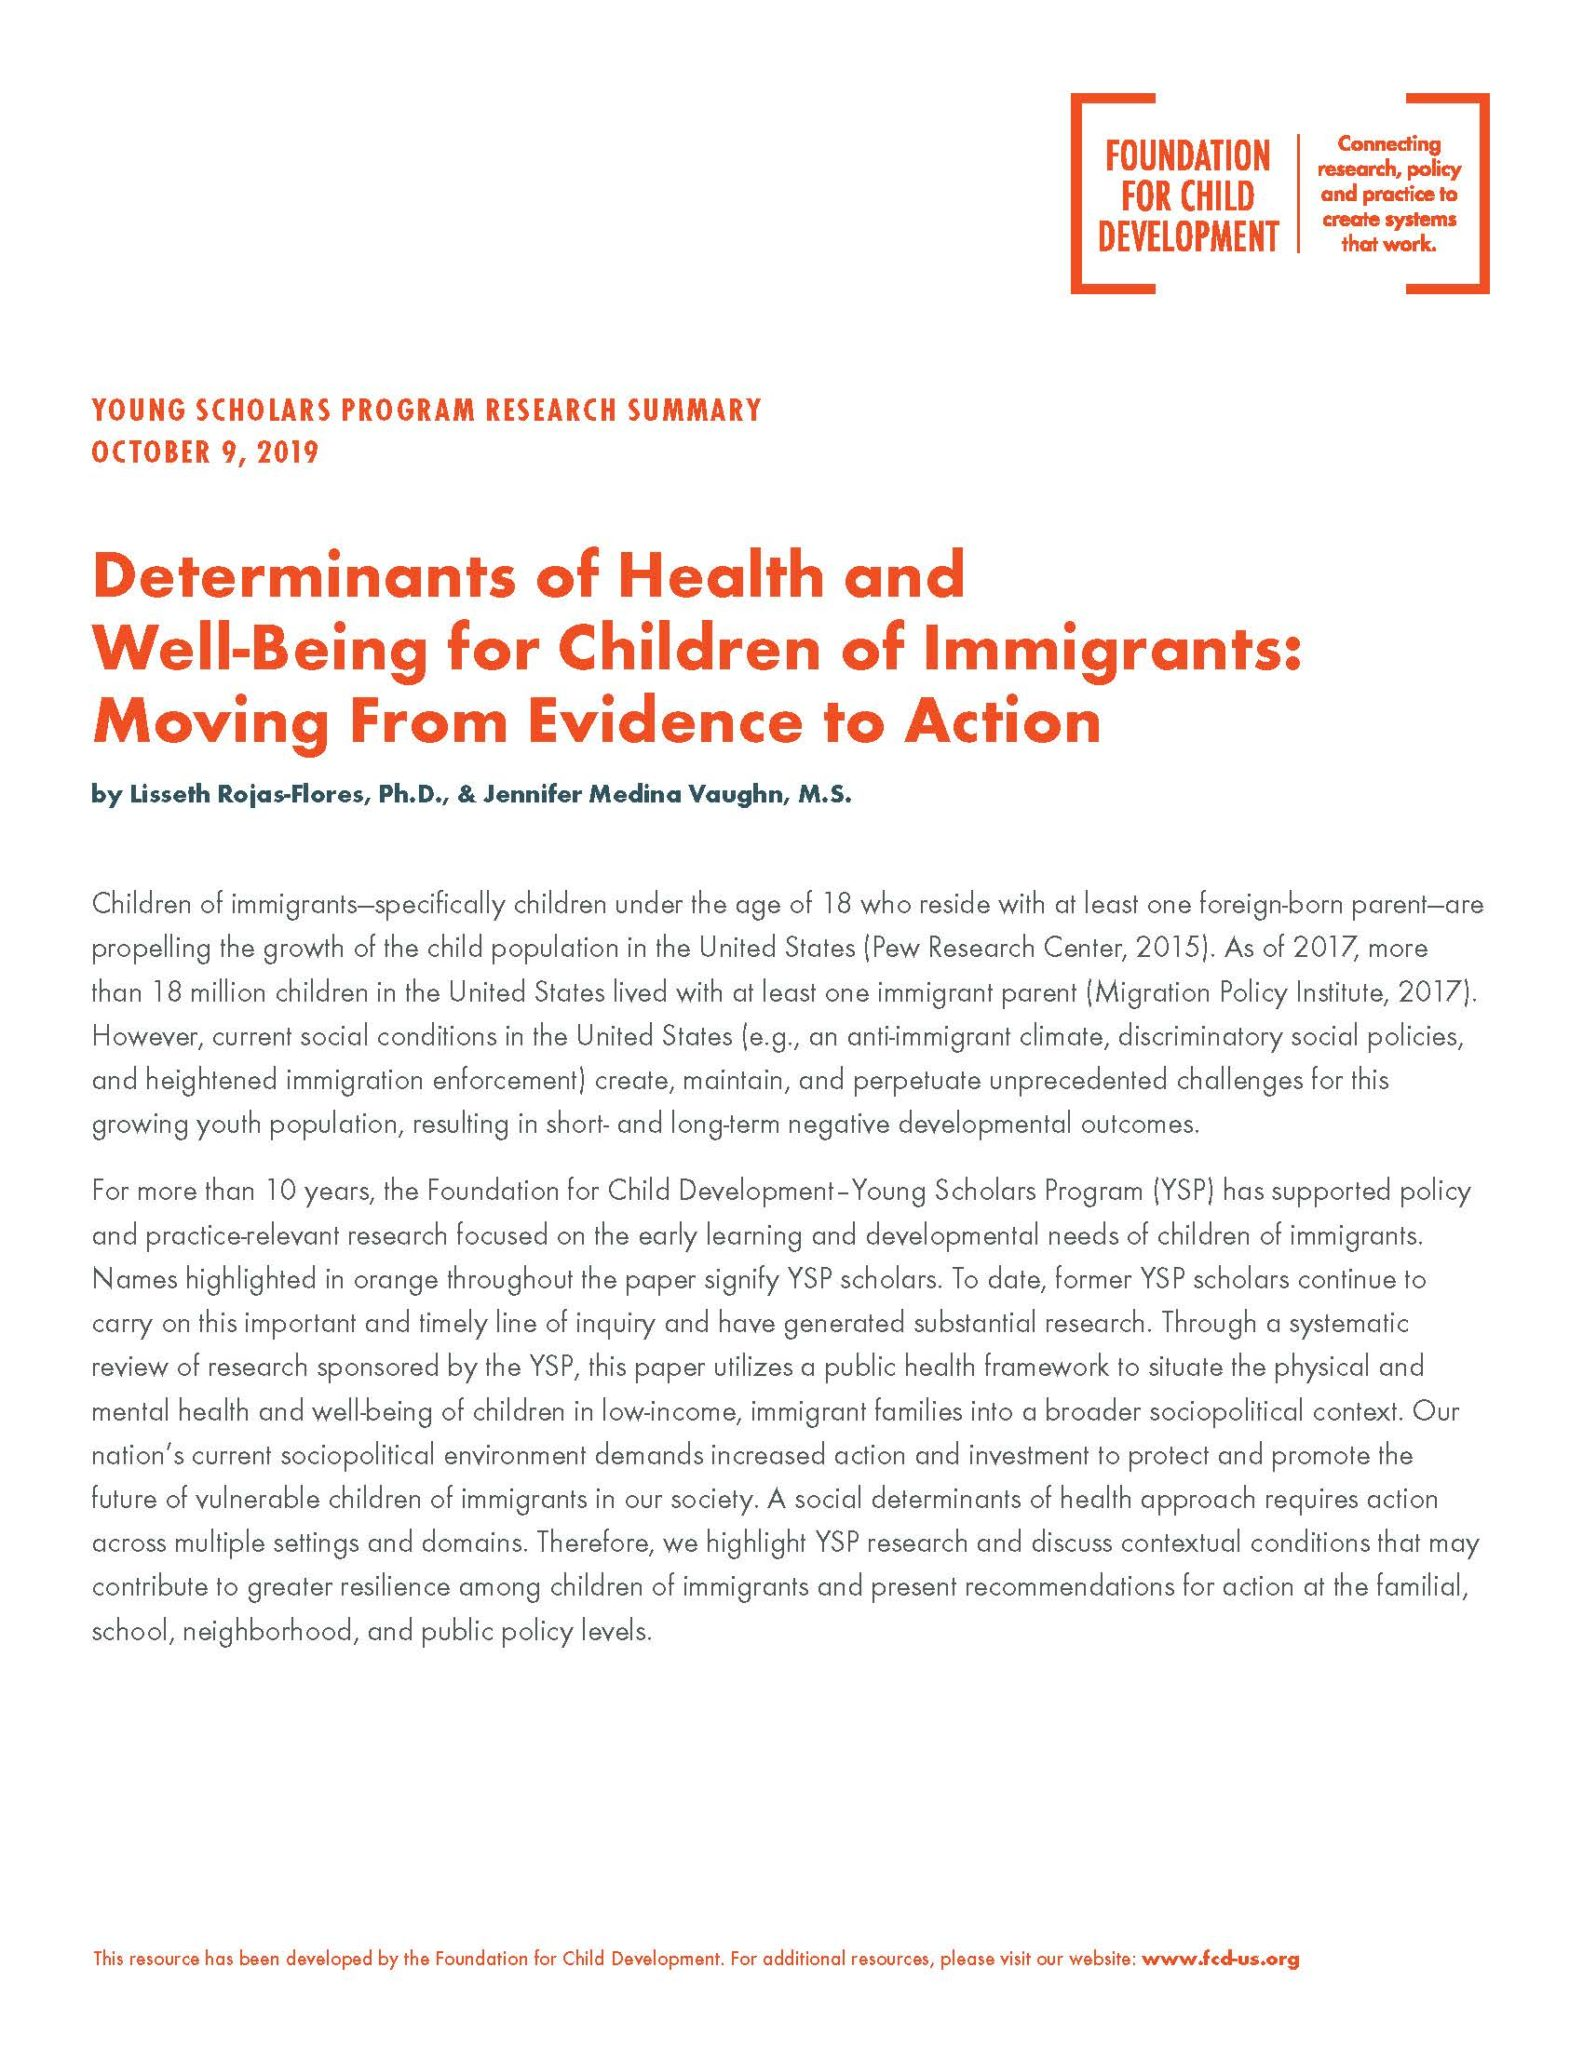 Preview: Determinants of Health and Well-being in Children of Immigrants